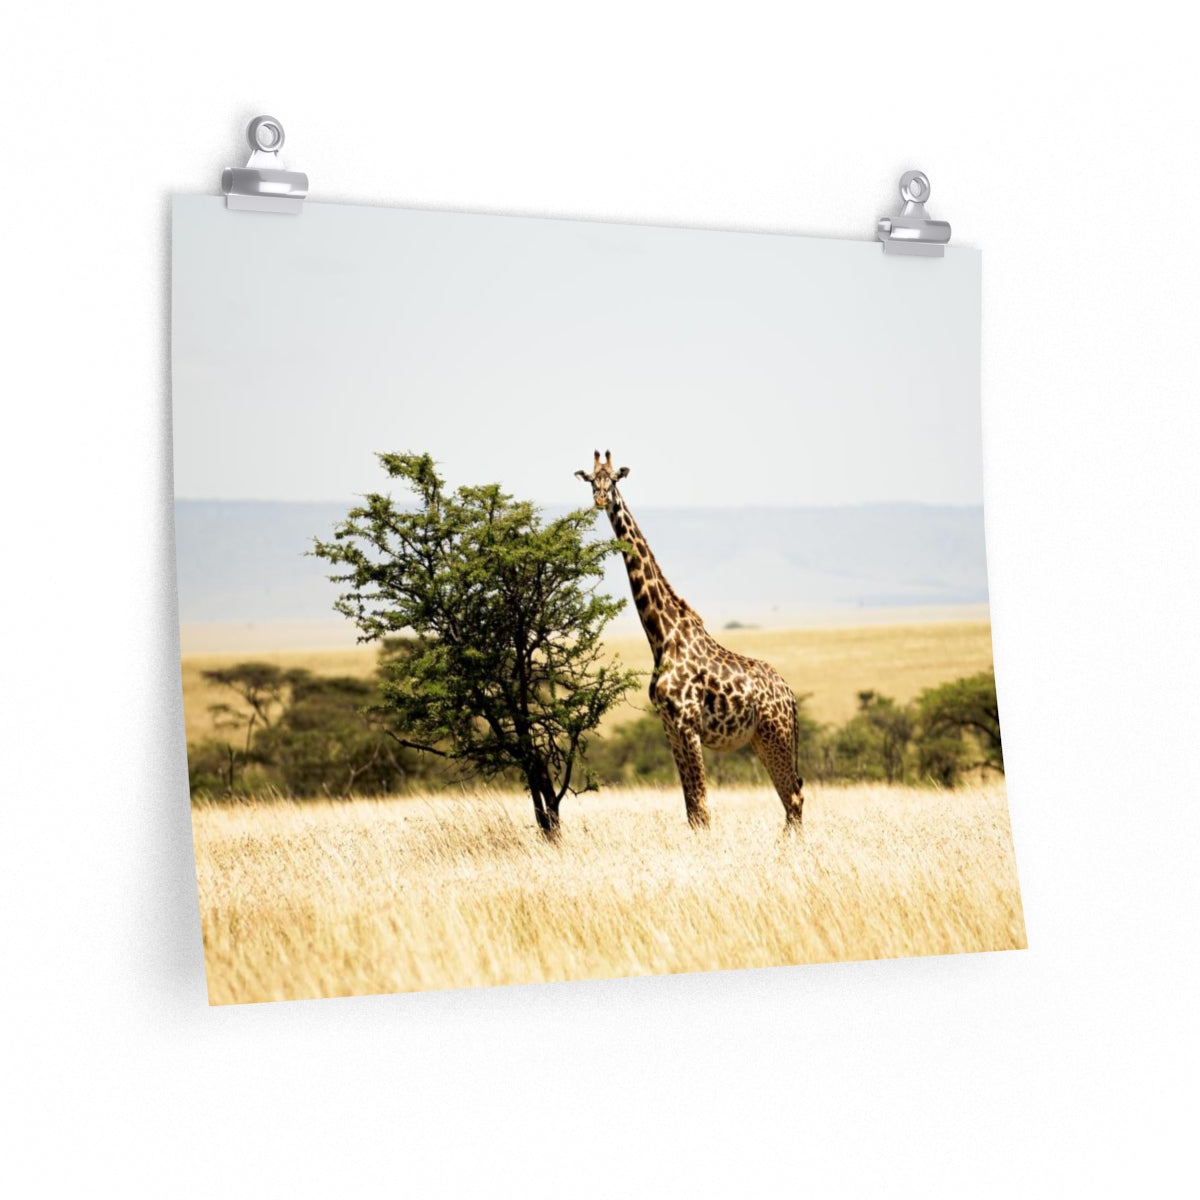 Giraffe in Kenya - Wide Print